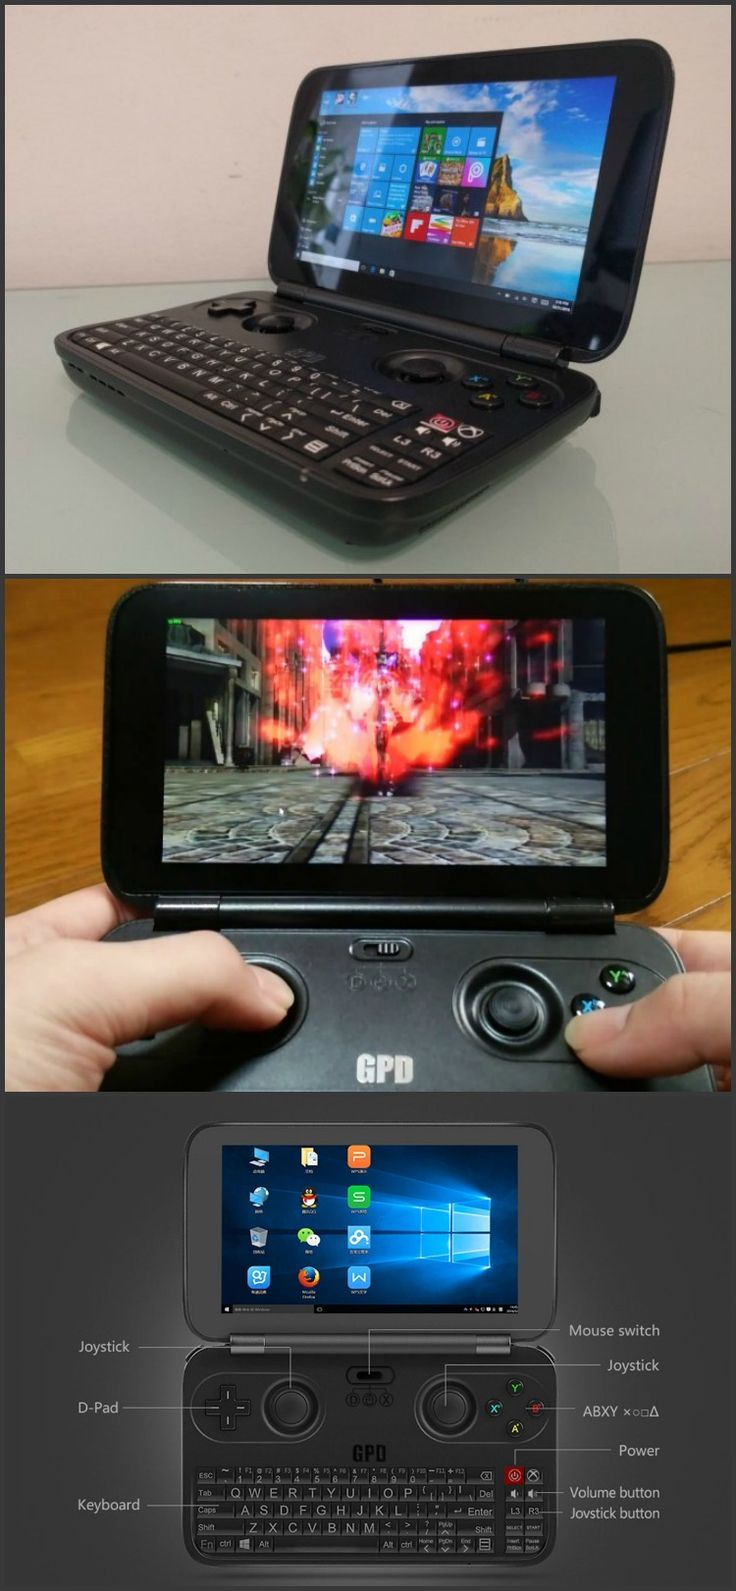 GPD - Small but powerful gaming and media Windows 10 OS handheld featuring a Quad Core CPU, 4GB RAM and 64GB storage.